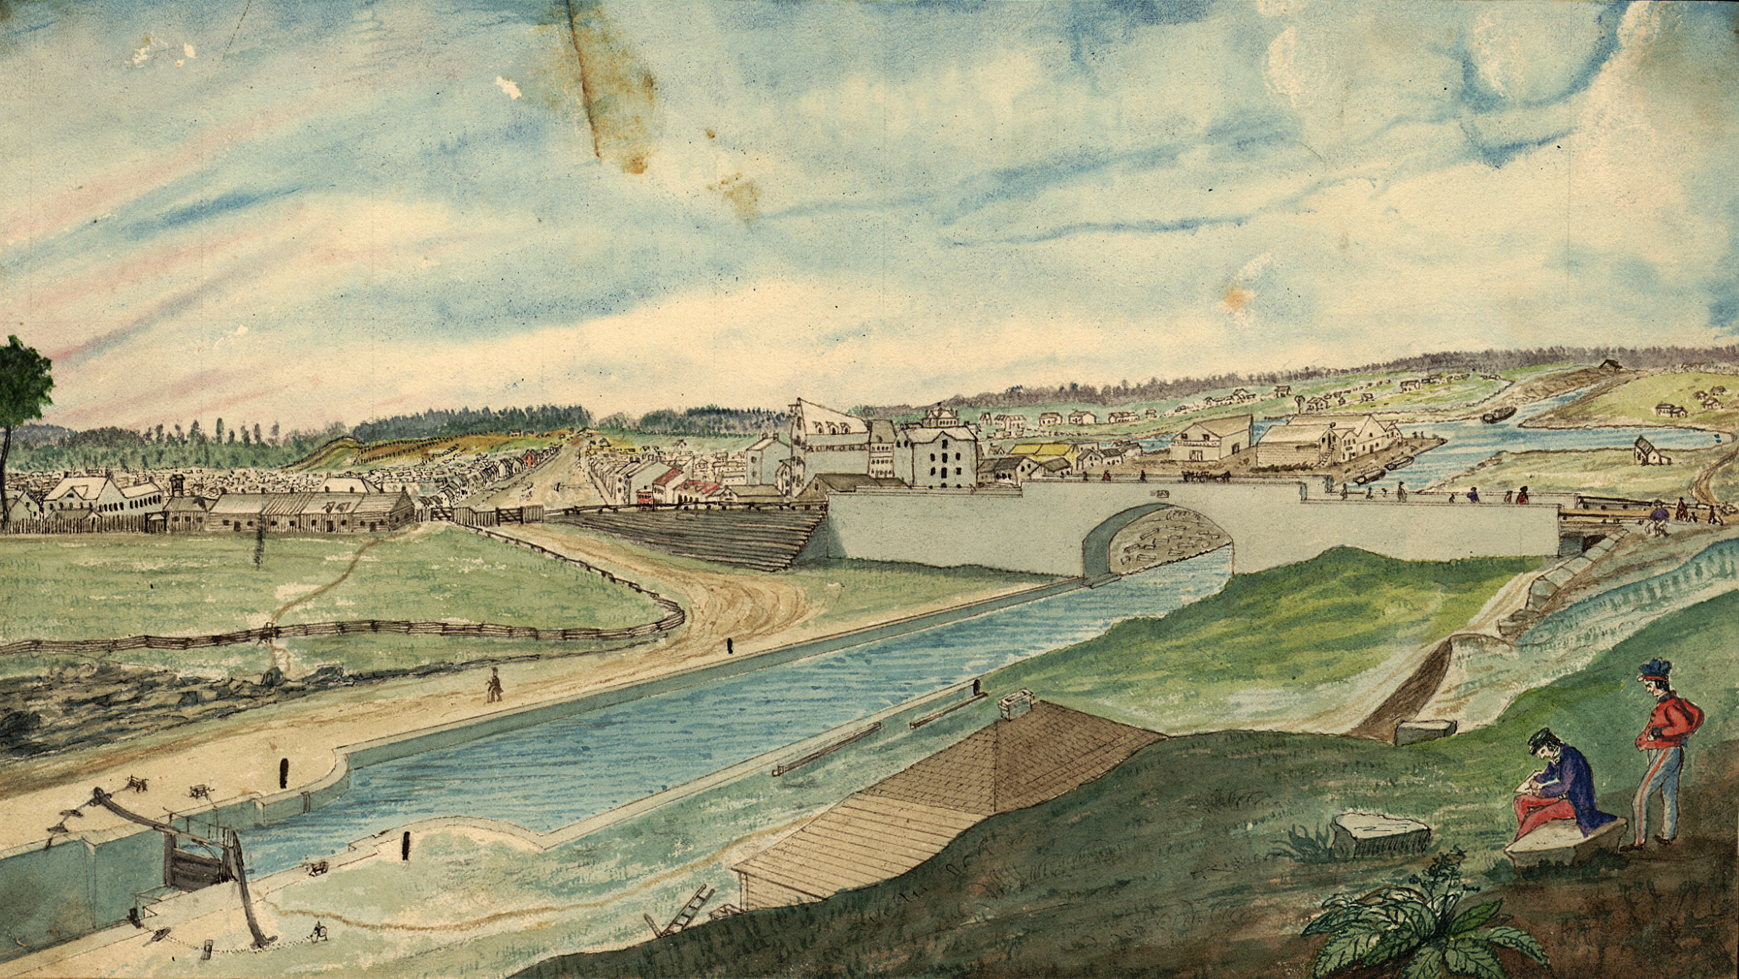 Lower Bytown from Barracks Hill, in 1845. The Bridge connecting Lower Bytown with the rest of the settlement was erected in 1827.